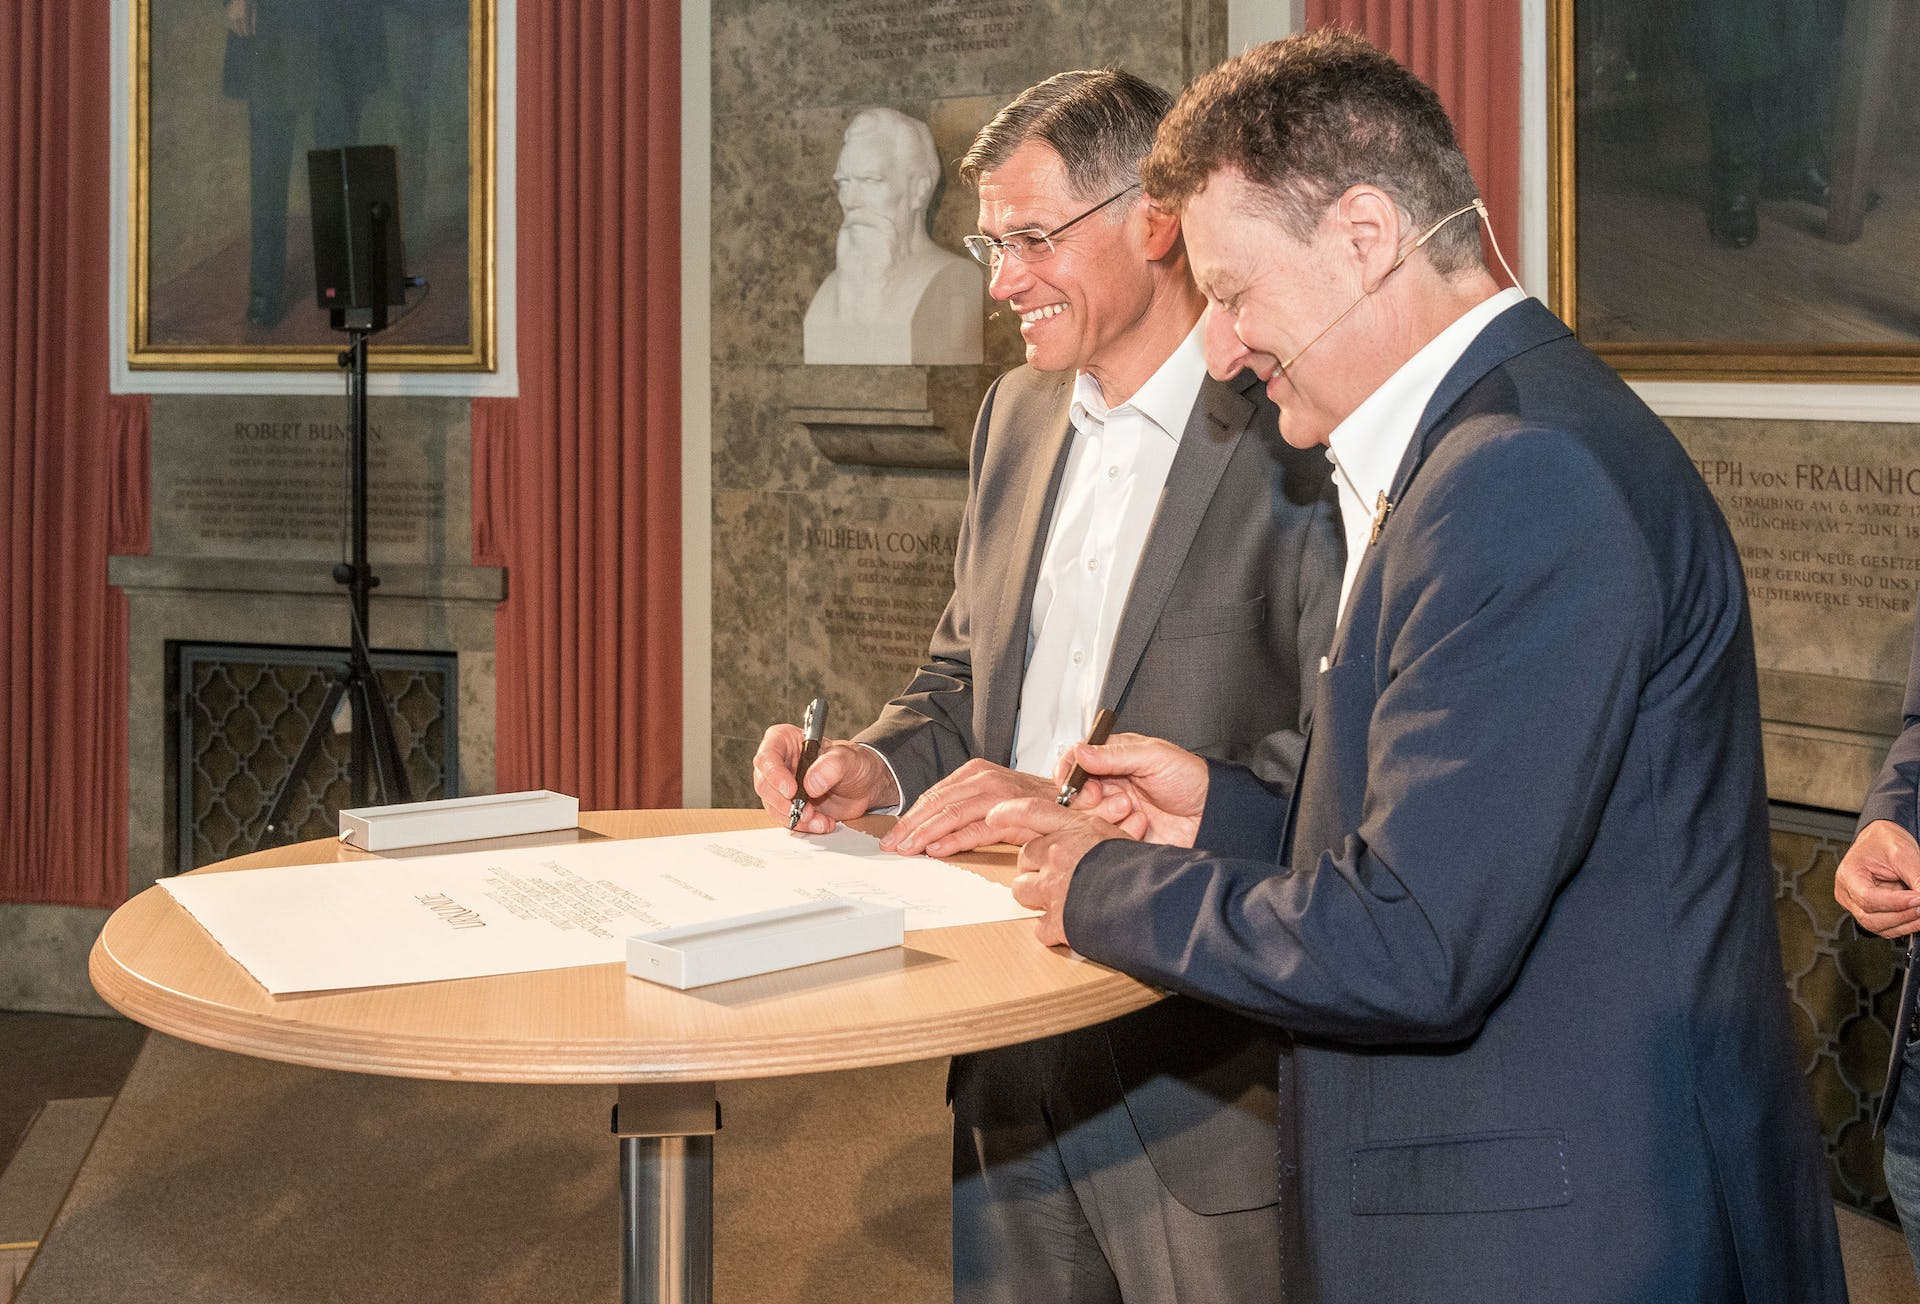 The close partnership has been sealed by signing the founding members' certificate (from left to right: Dr. Karl Lamprecht, President and CEO of the ZEISS Group and Prof. Wolfgang Heckl, general director of Deutsches Museum).